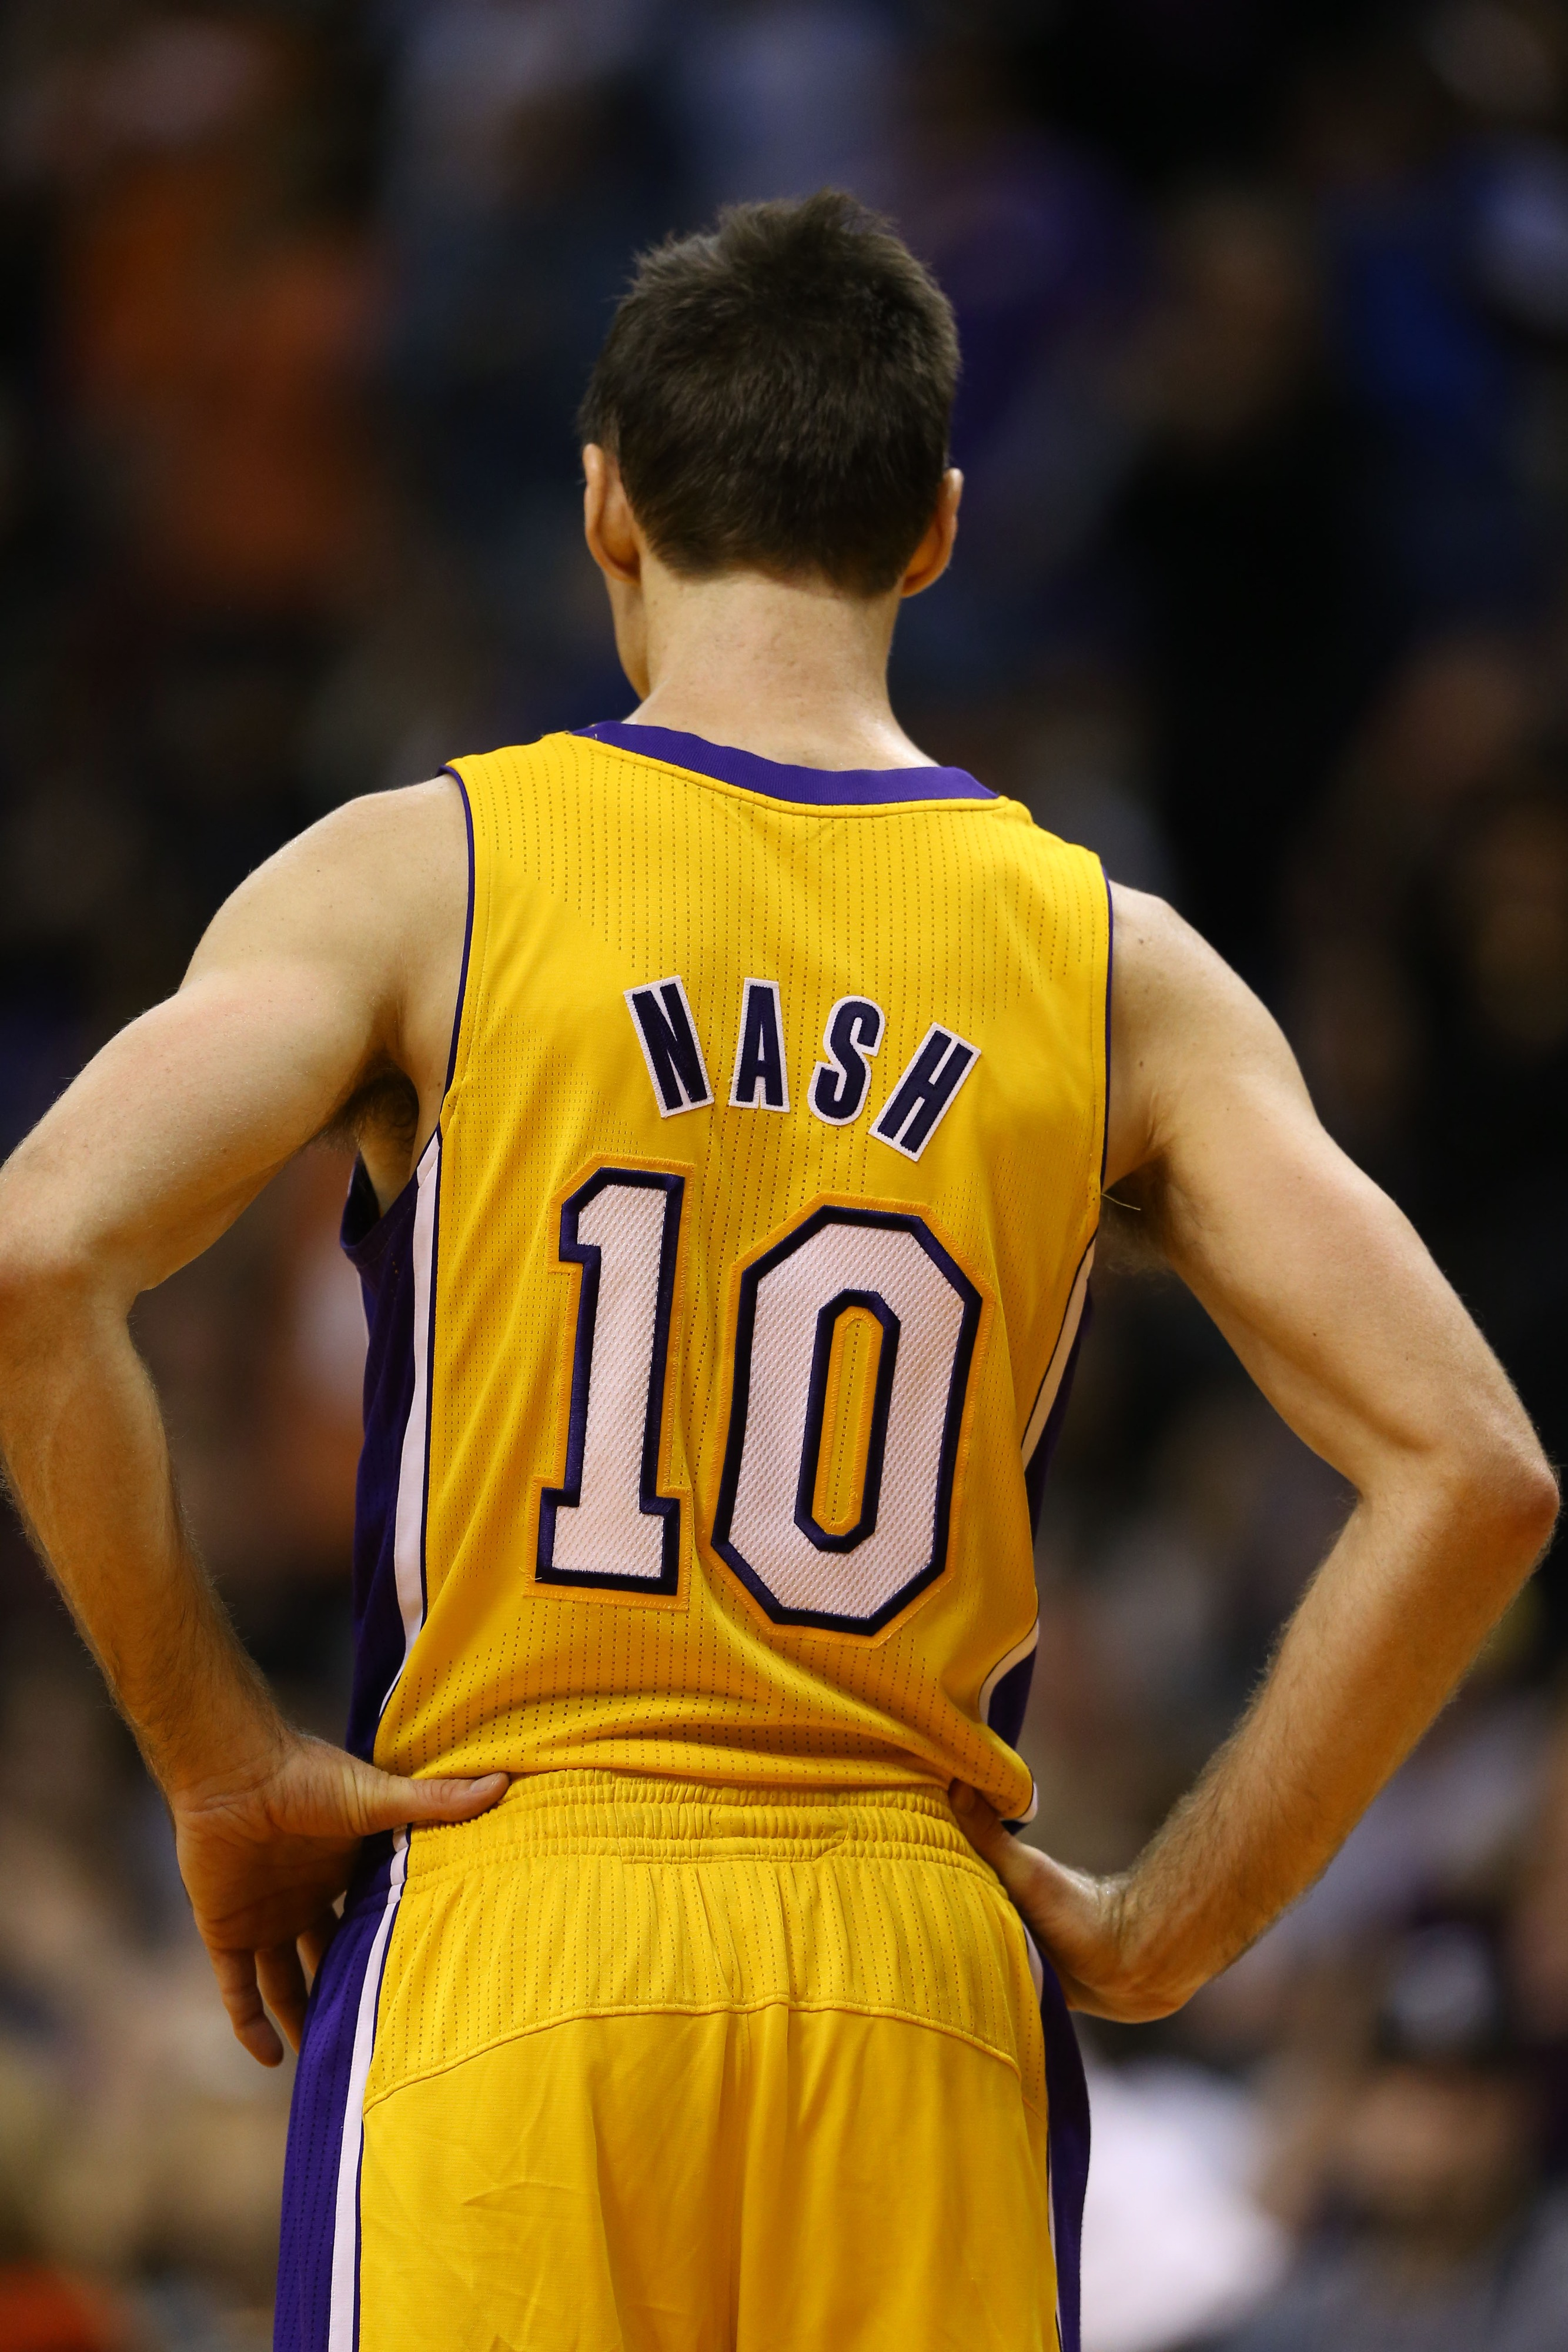 Steve Nash: 'It's either back with the Lakers next year or I'm done'